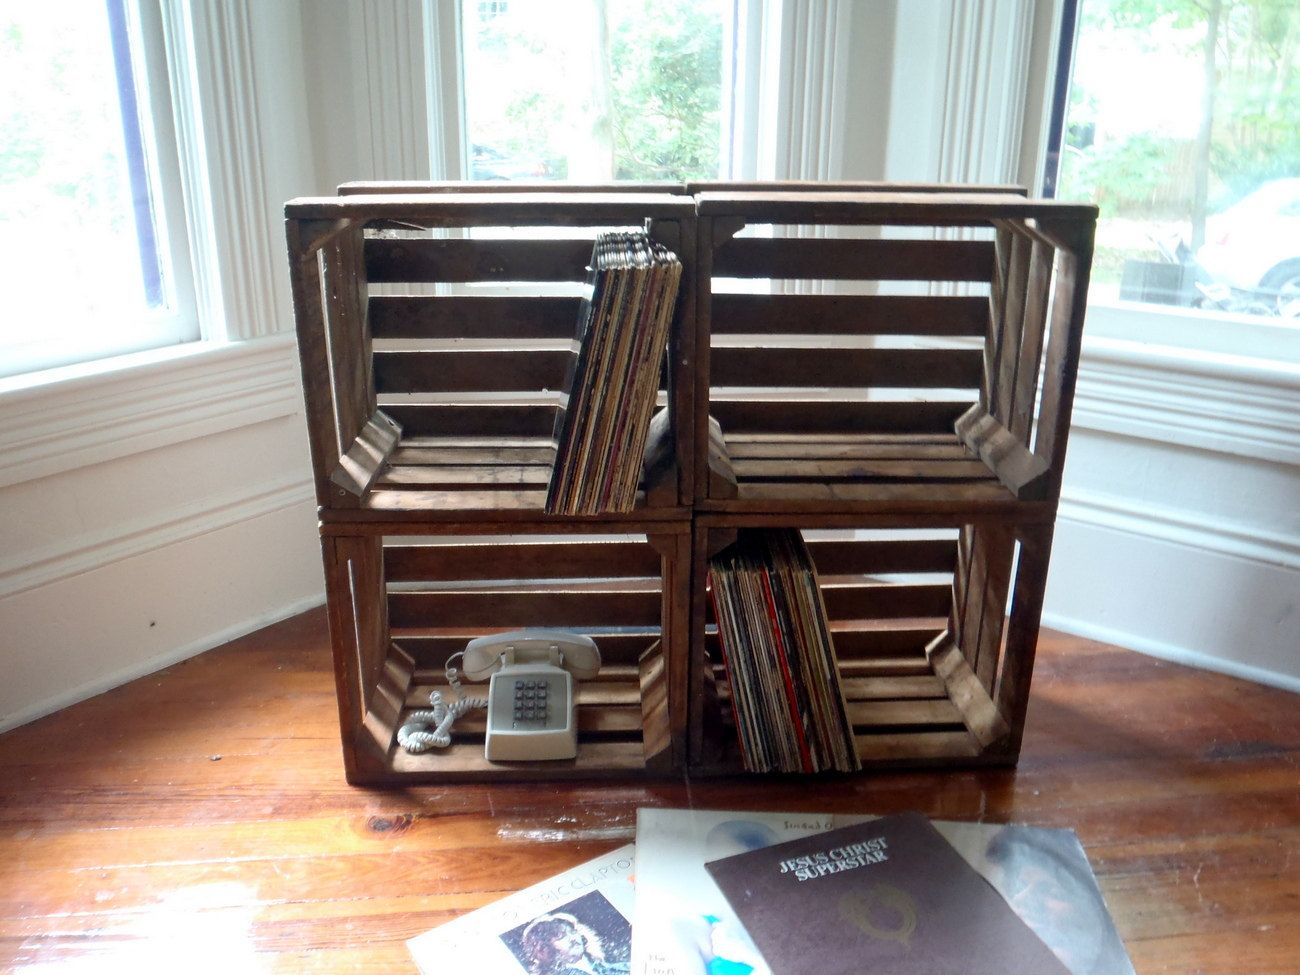 Wood Crate Rustic Crate Fruit Crate Large Crate LP Record Sized